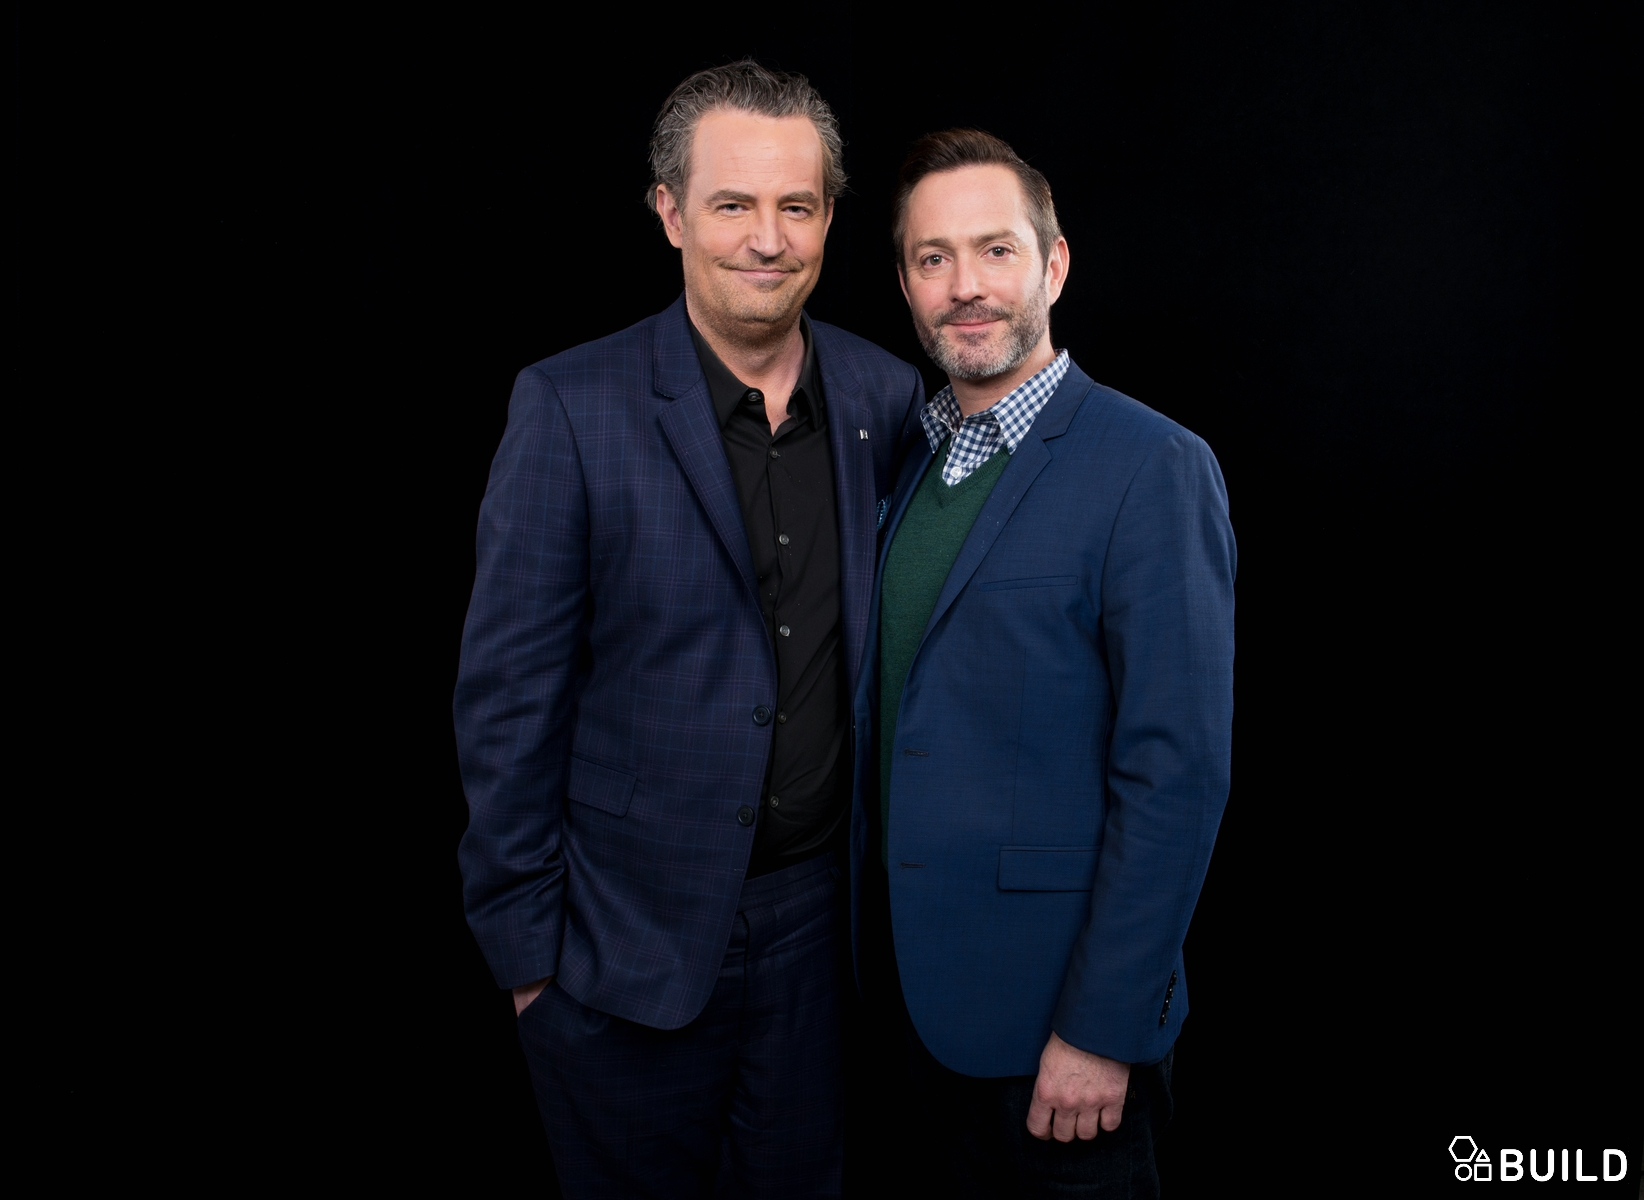 Matthew Perry and Thomas Lennon visit AOL Hq for Build on April 5, 2016 in New York. Photos by Noam Galai